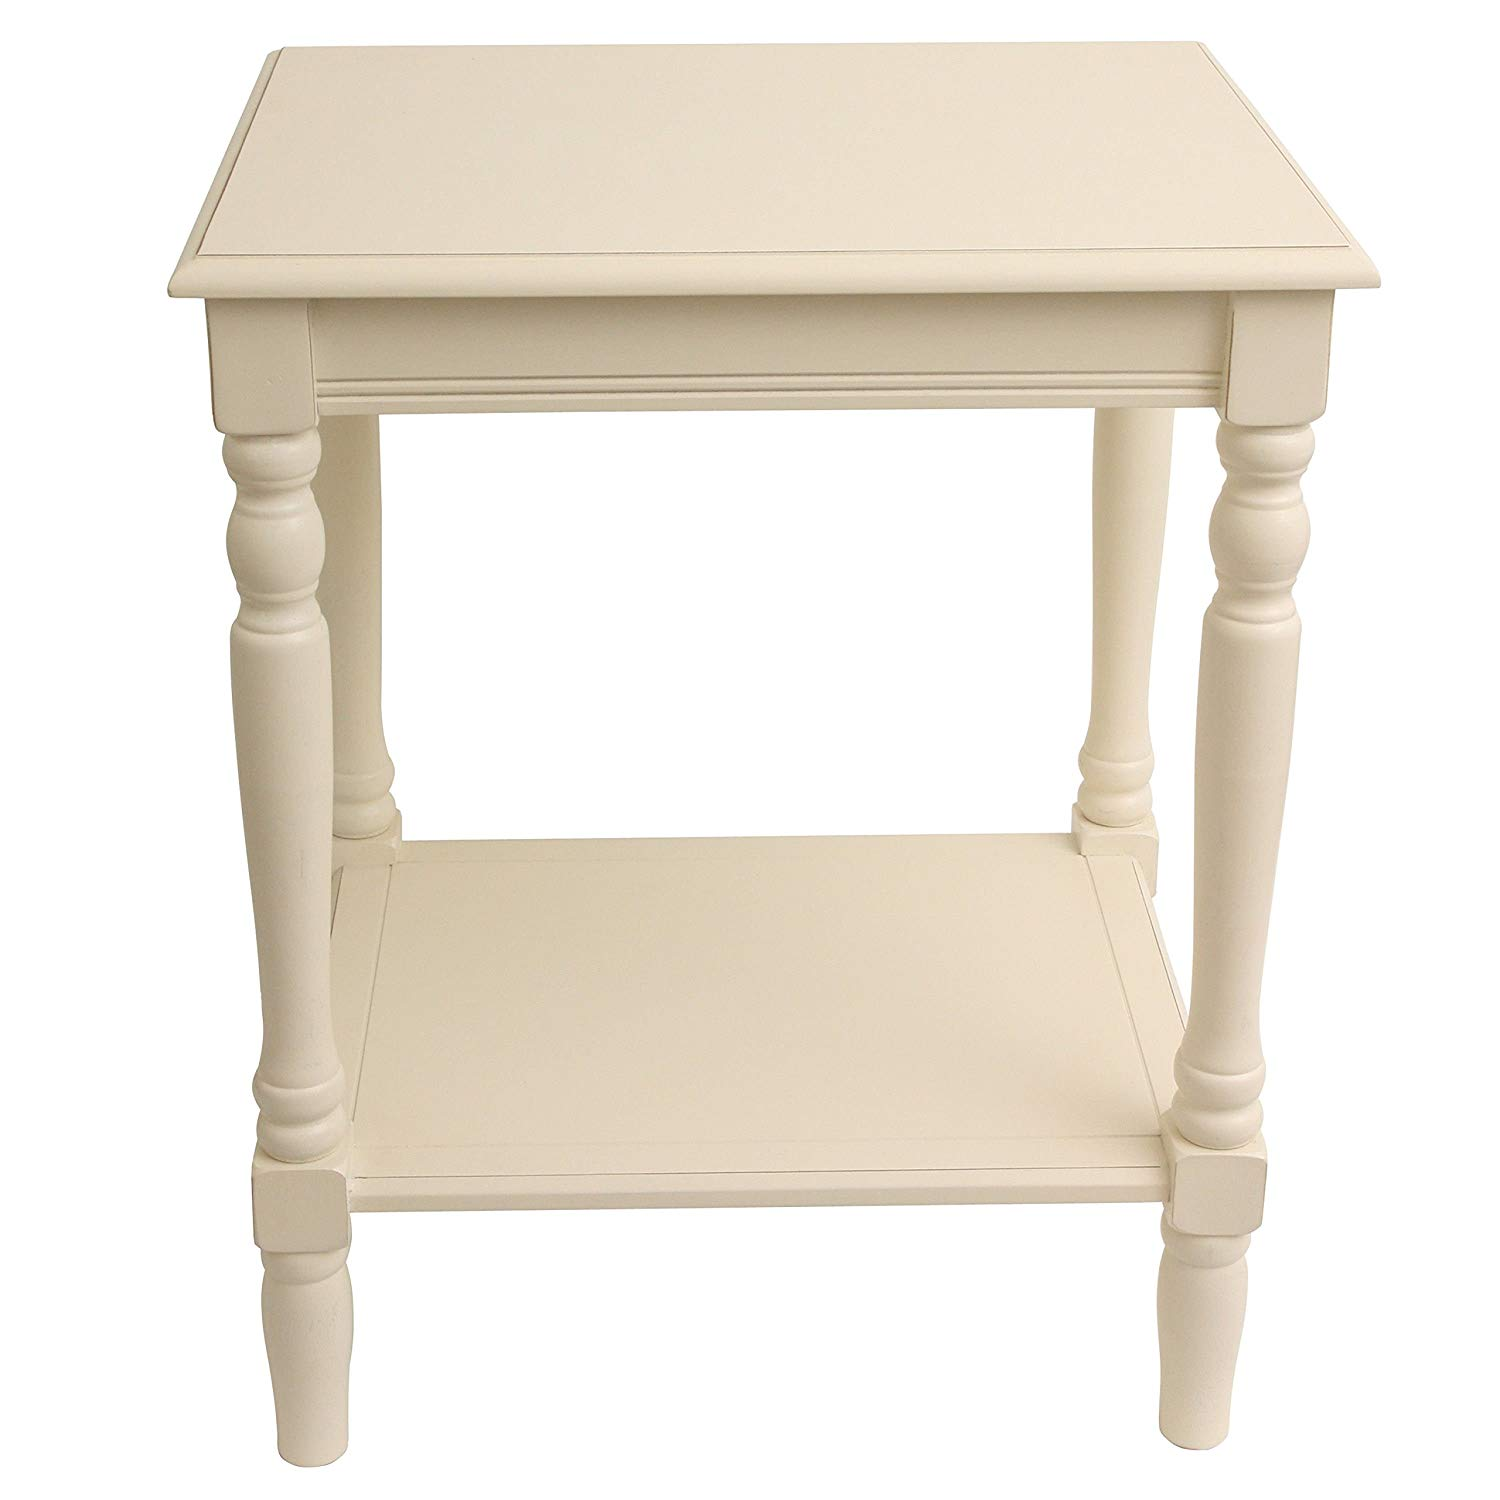 painted antique white end accent table with bottom shelf wood kitchen dining glass coffee monarch grey patio furniture las vegas very narrow hall small tables outdoor battery